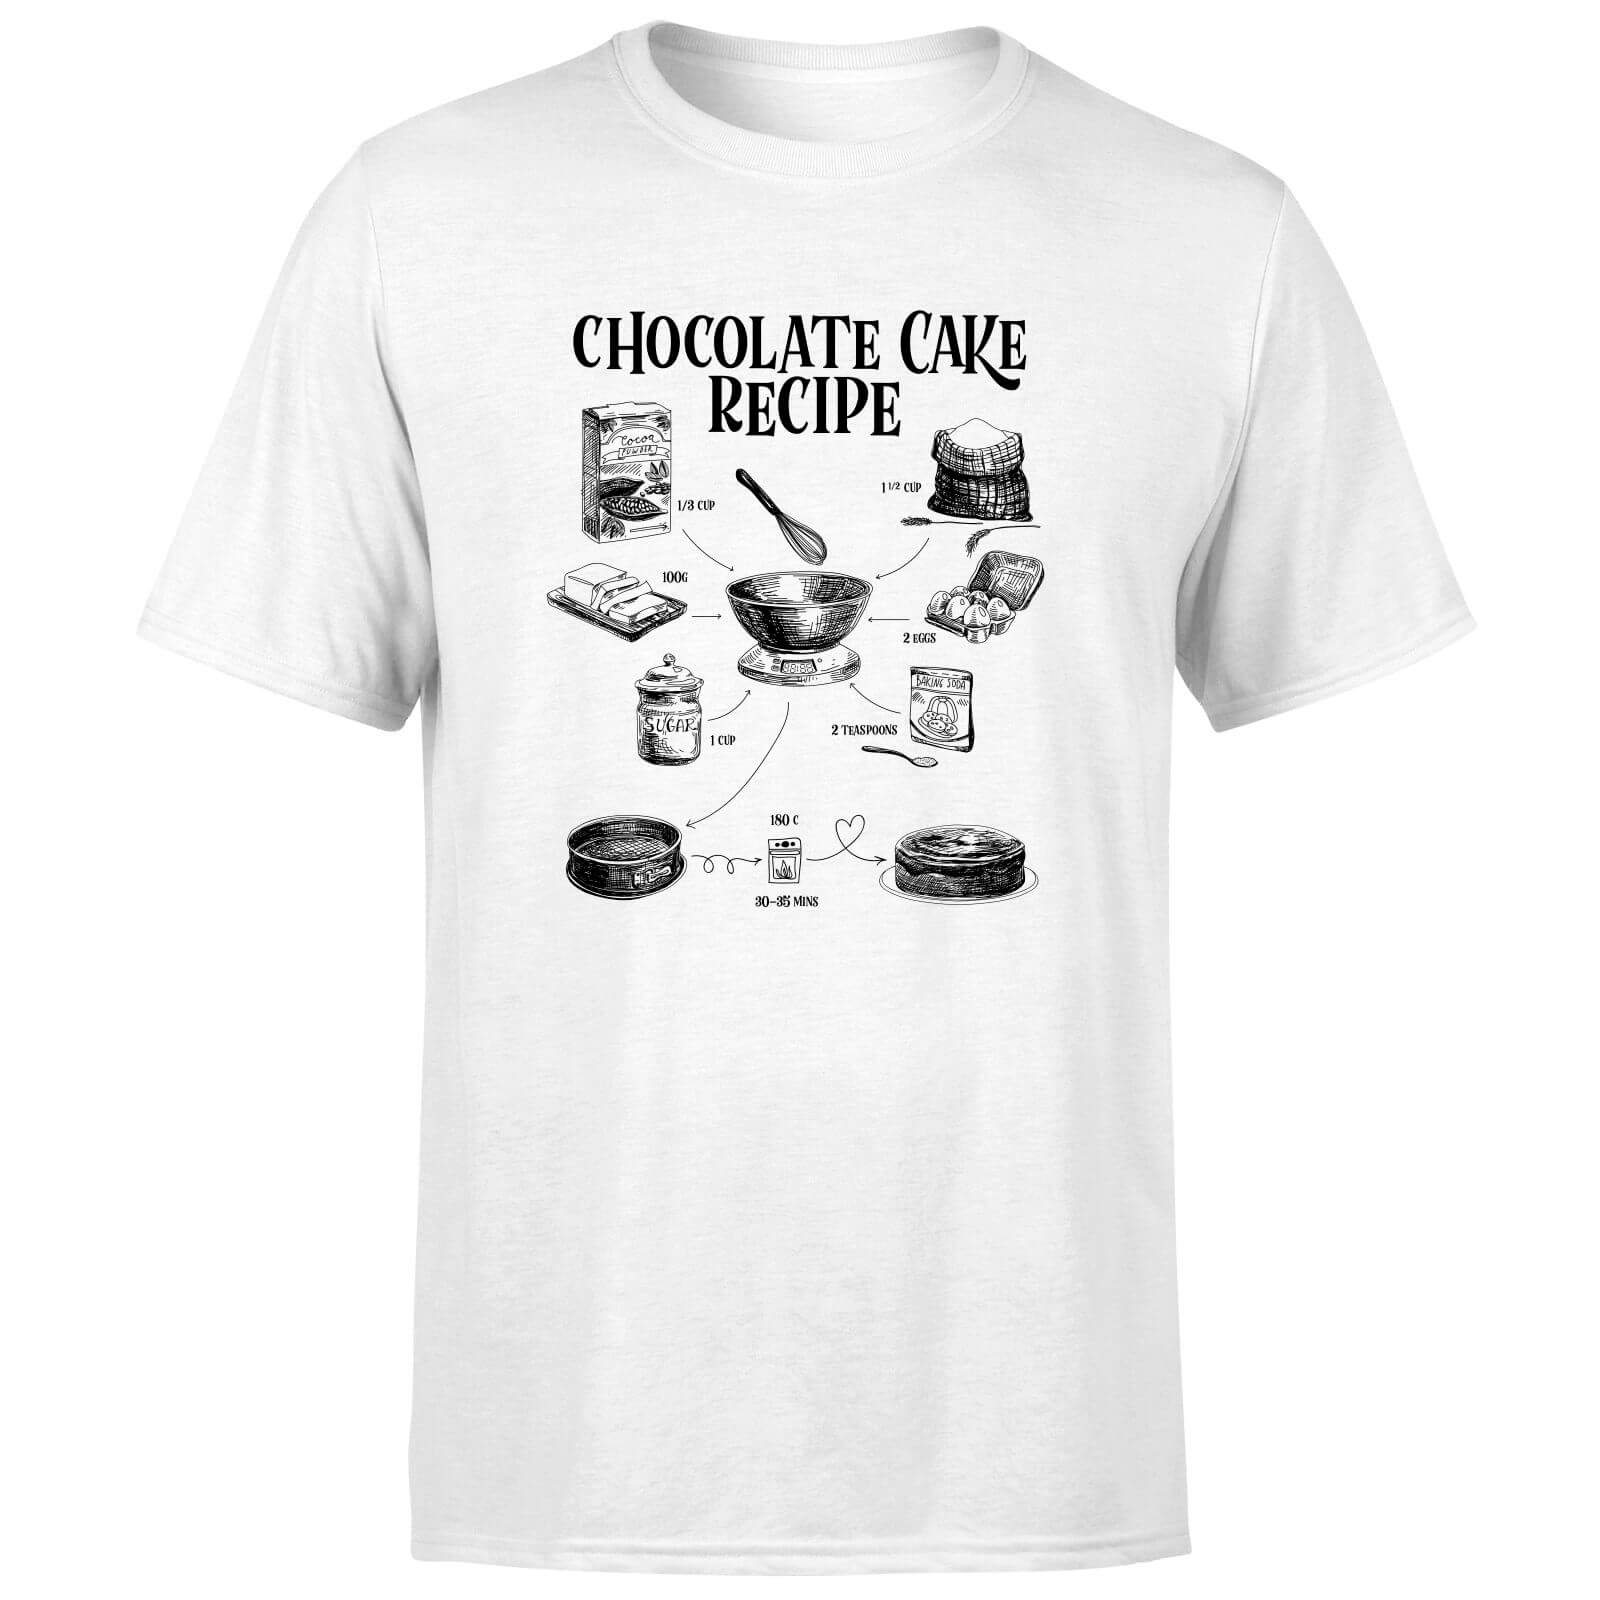 Chocolate Cake Recipe T-Shirt - White